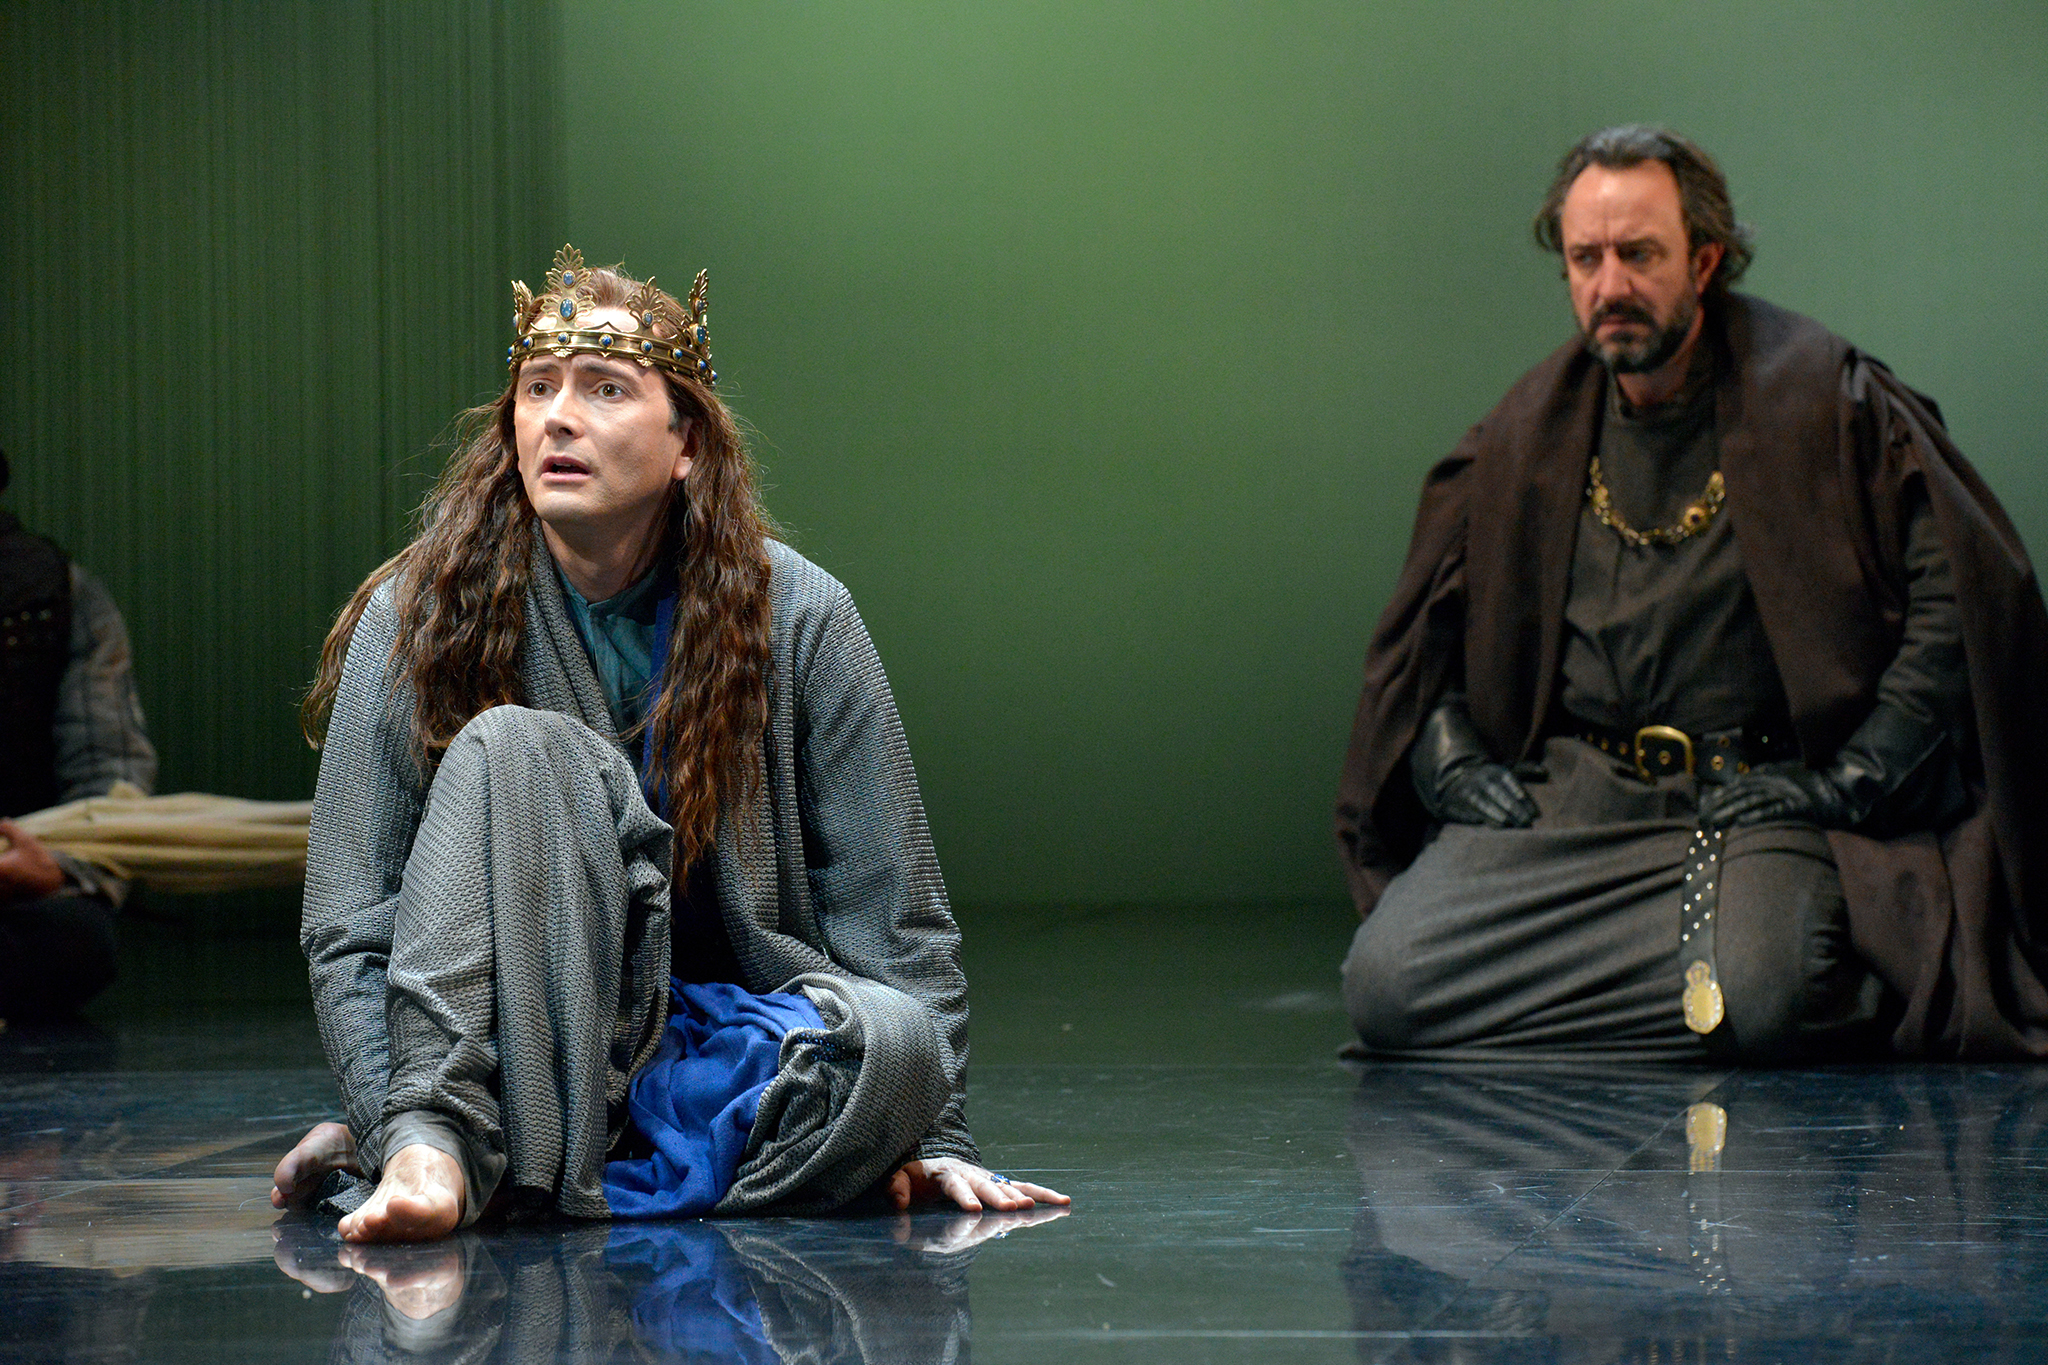 Royal Shakespeare Company production of RICHARD II by William Shakespearedirected by Gregory Doran